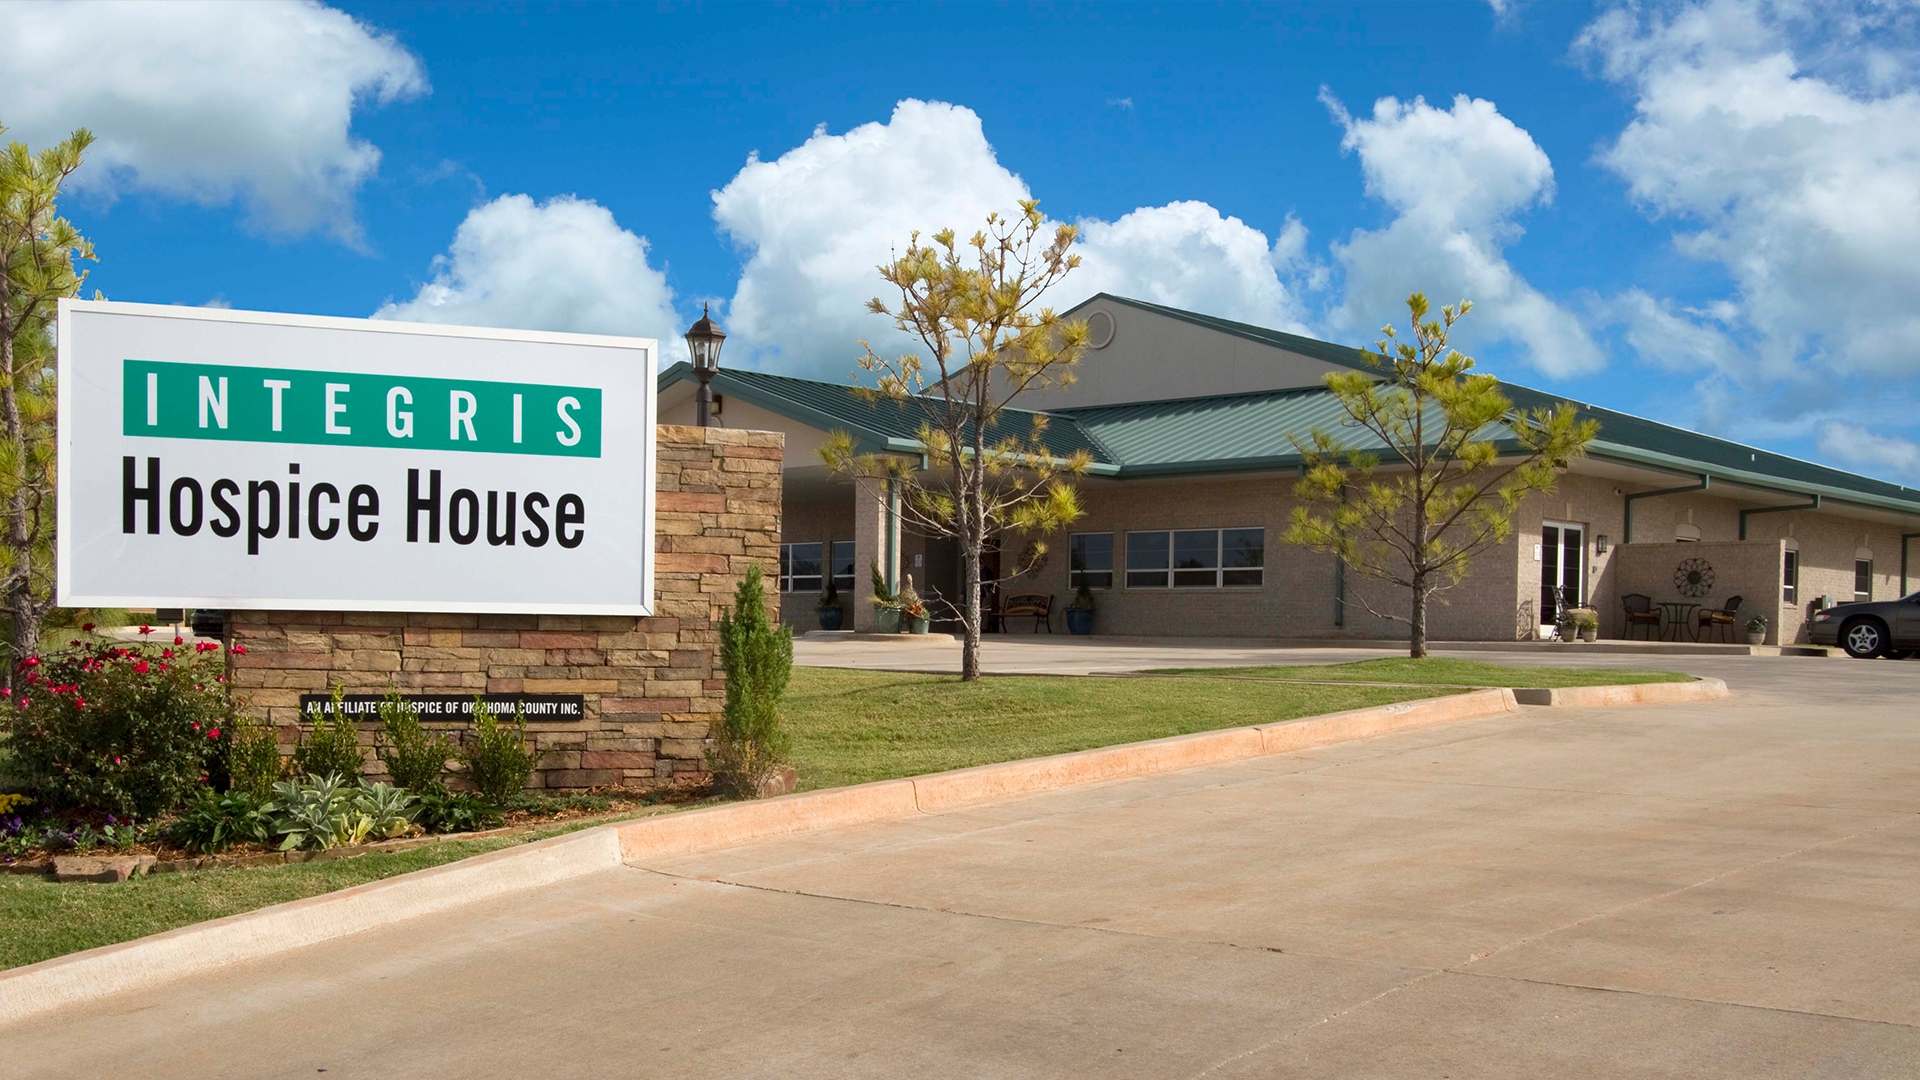 INTEGRIS Hospice House